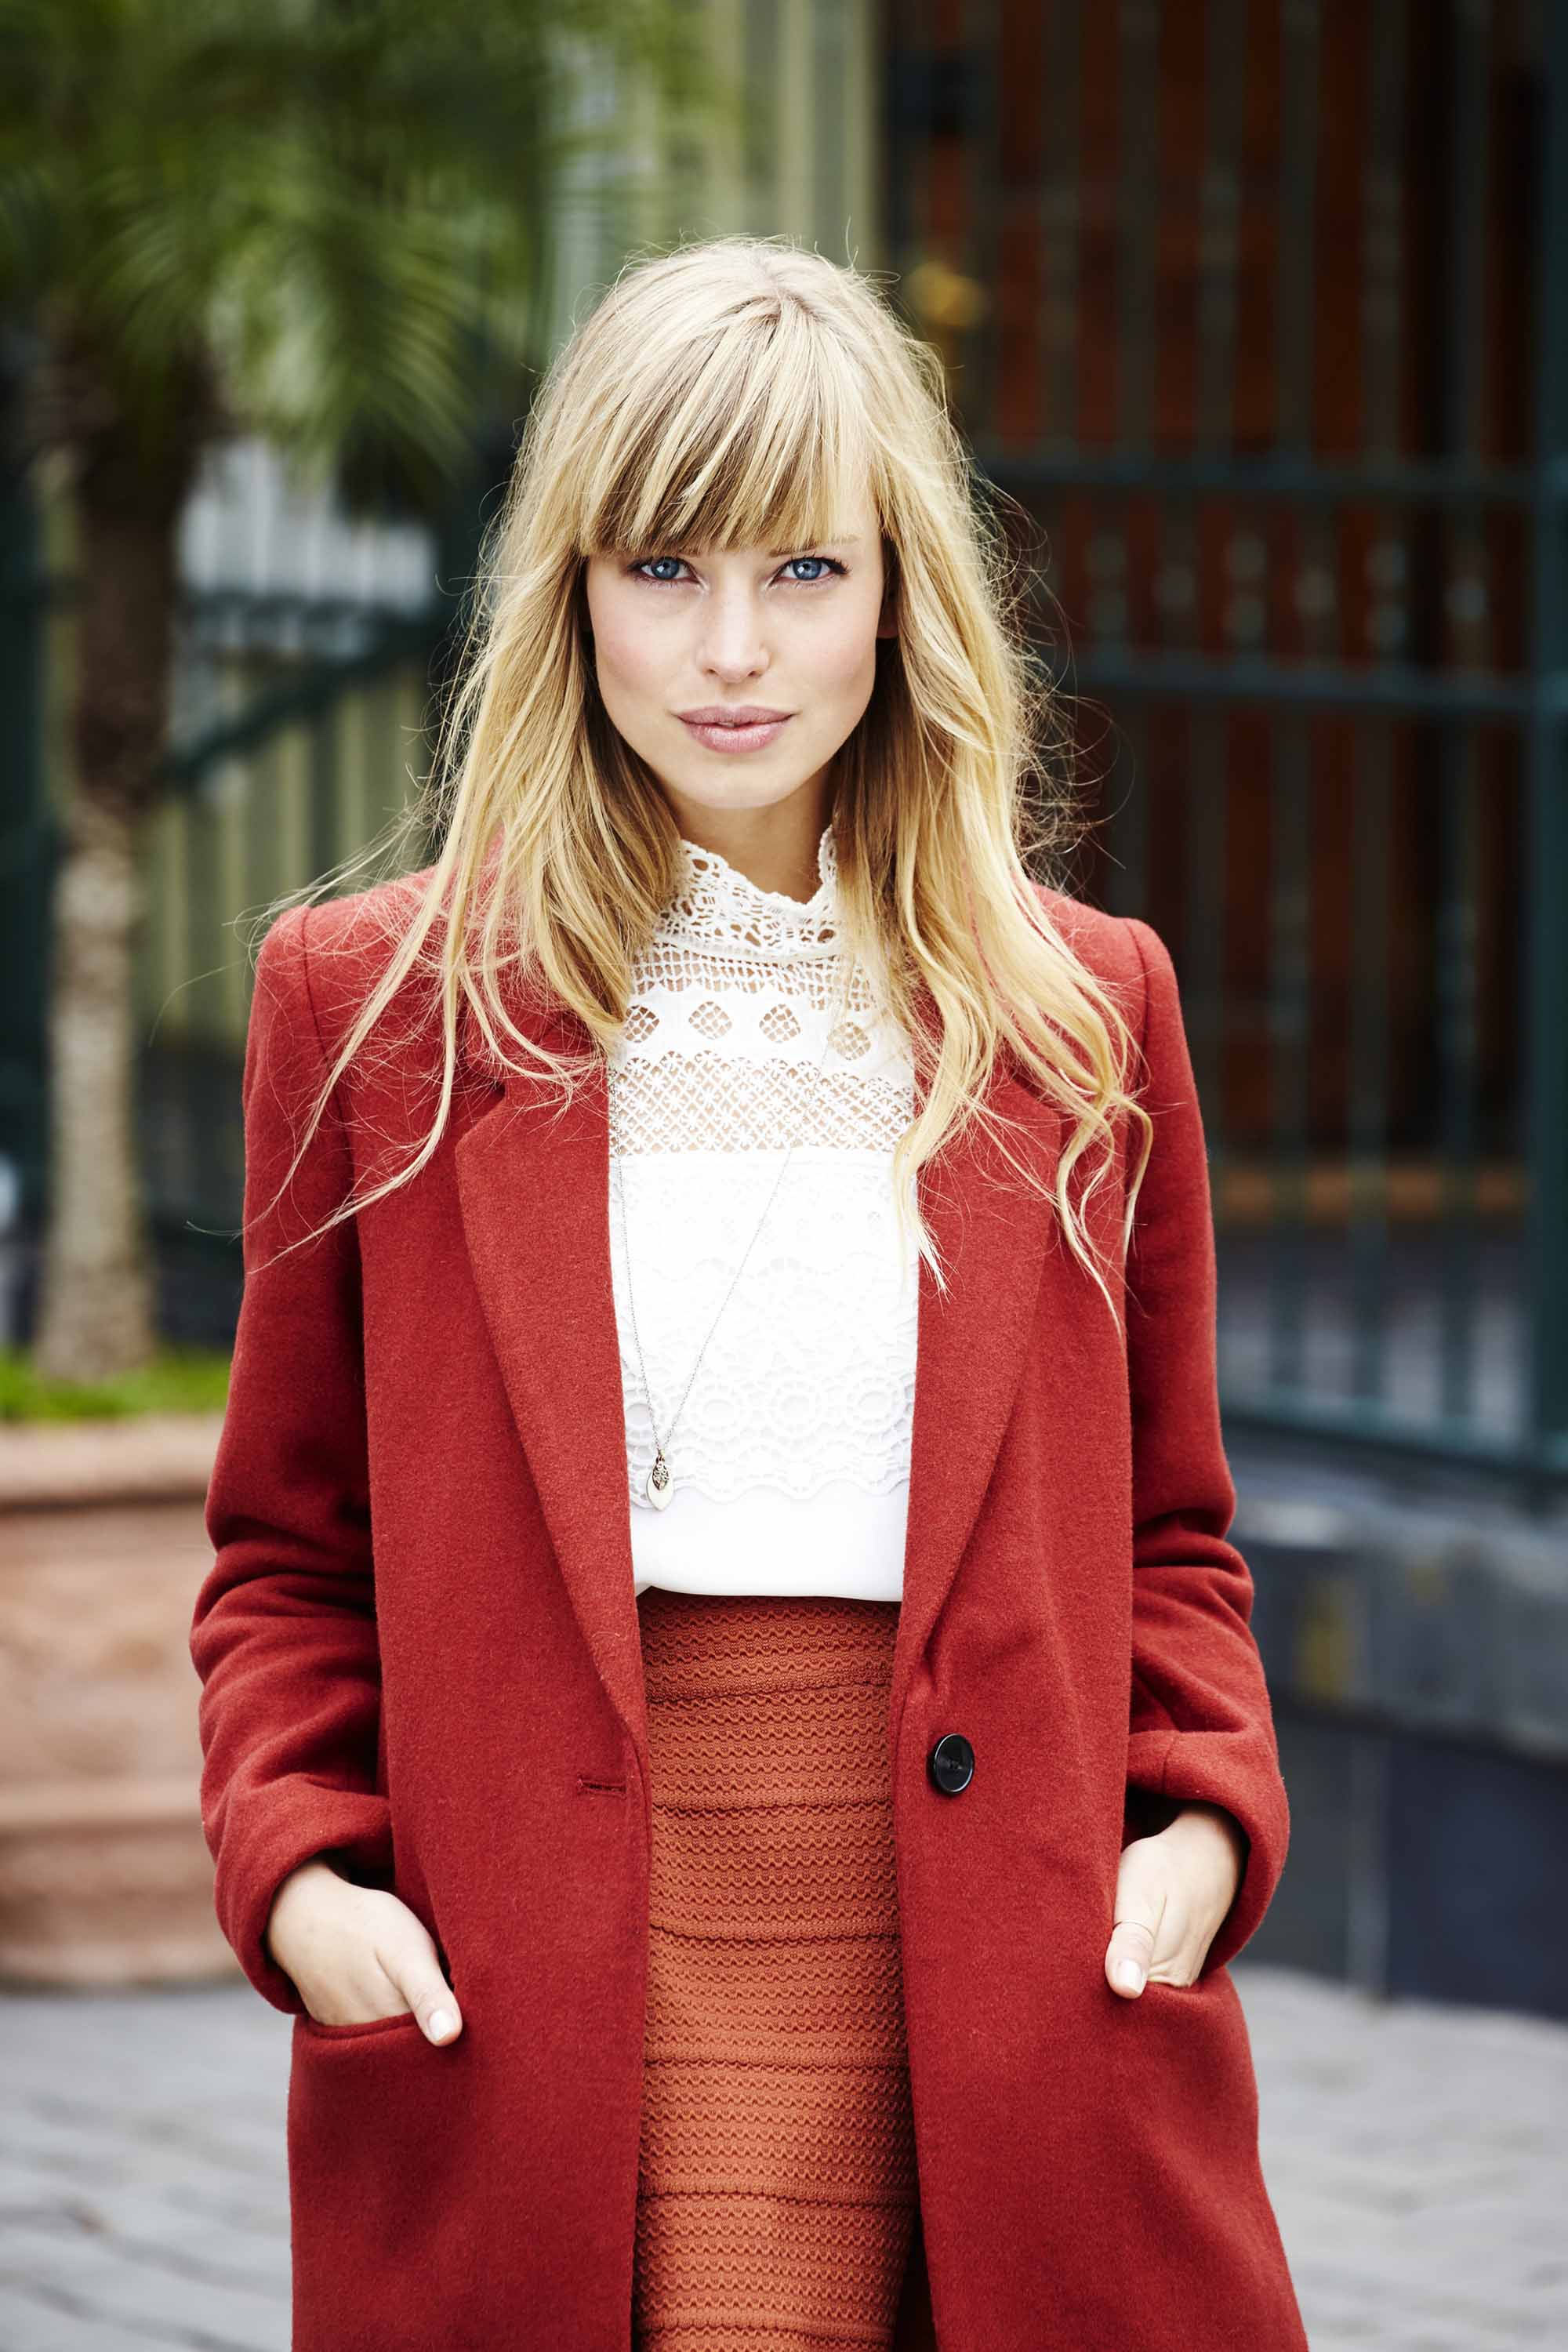 Flat hair solutions blonde woman with side fringe in red coat smiling